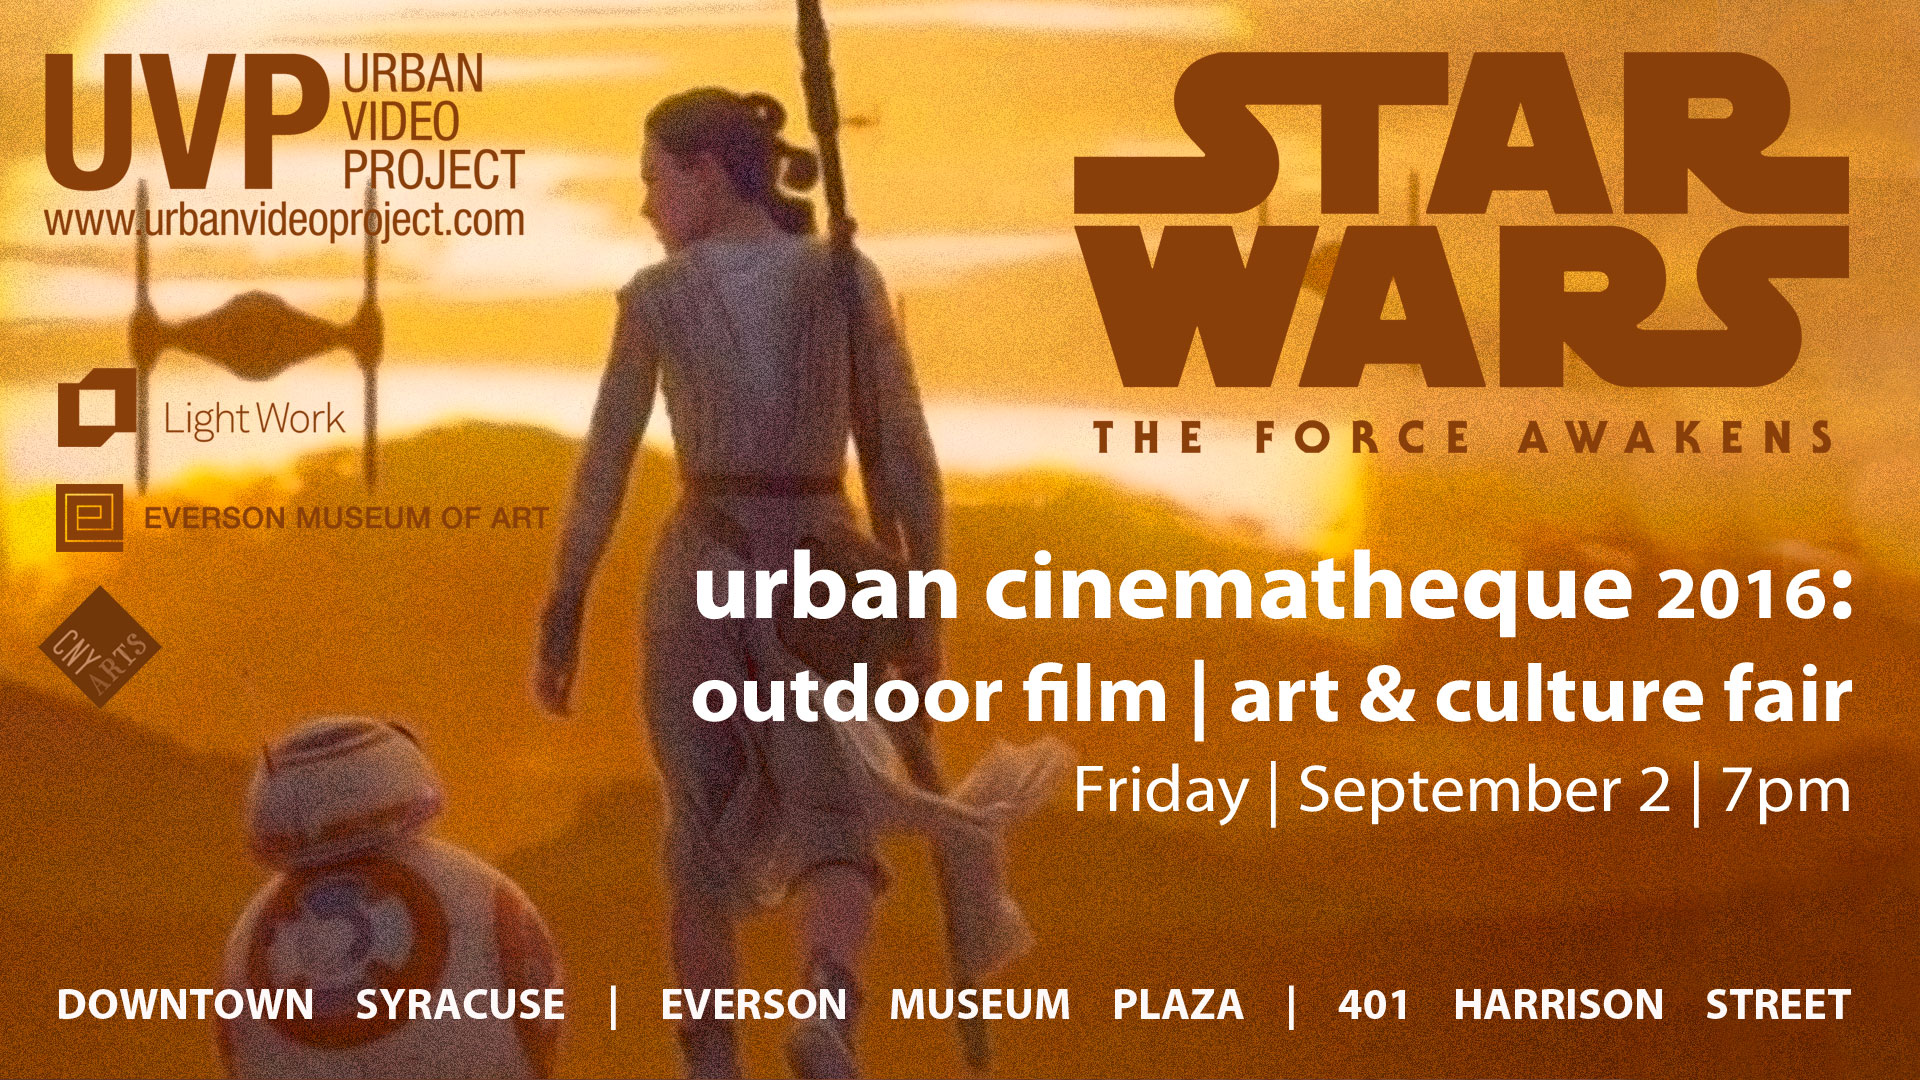 UVP_UrbanCinematheque2016_StarWarsForceAwakens_info-slide